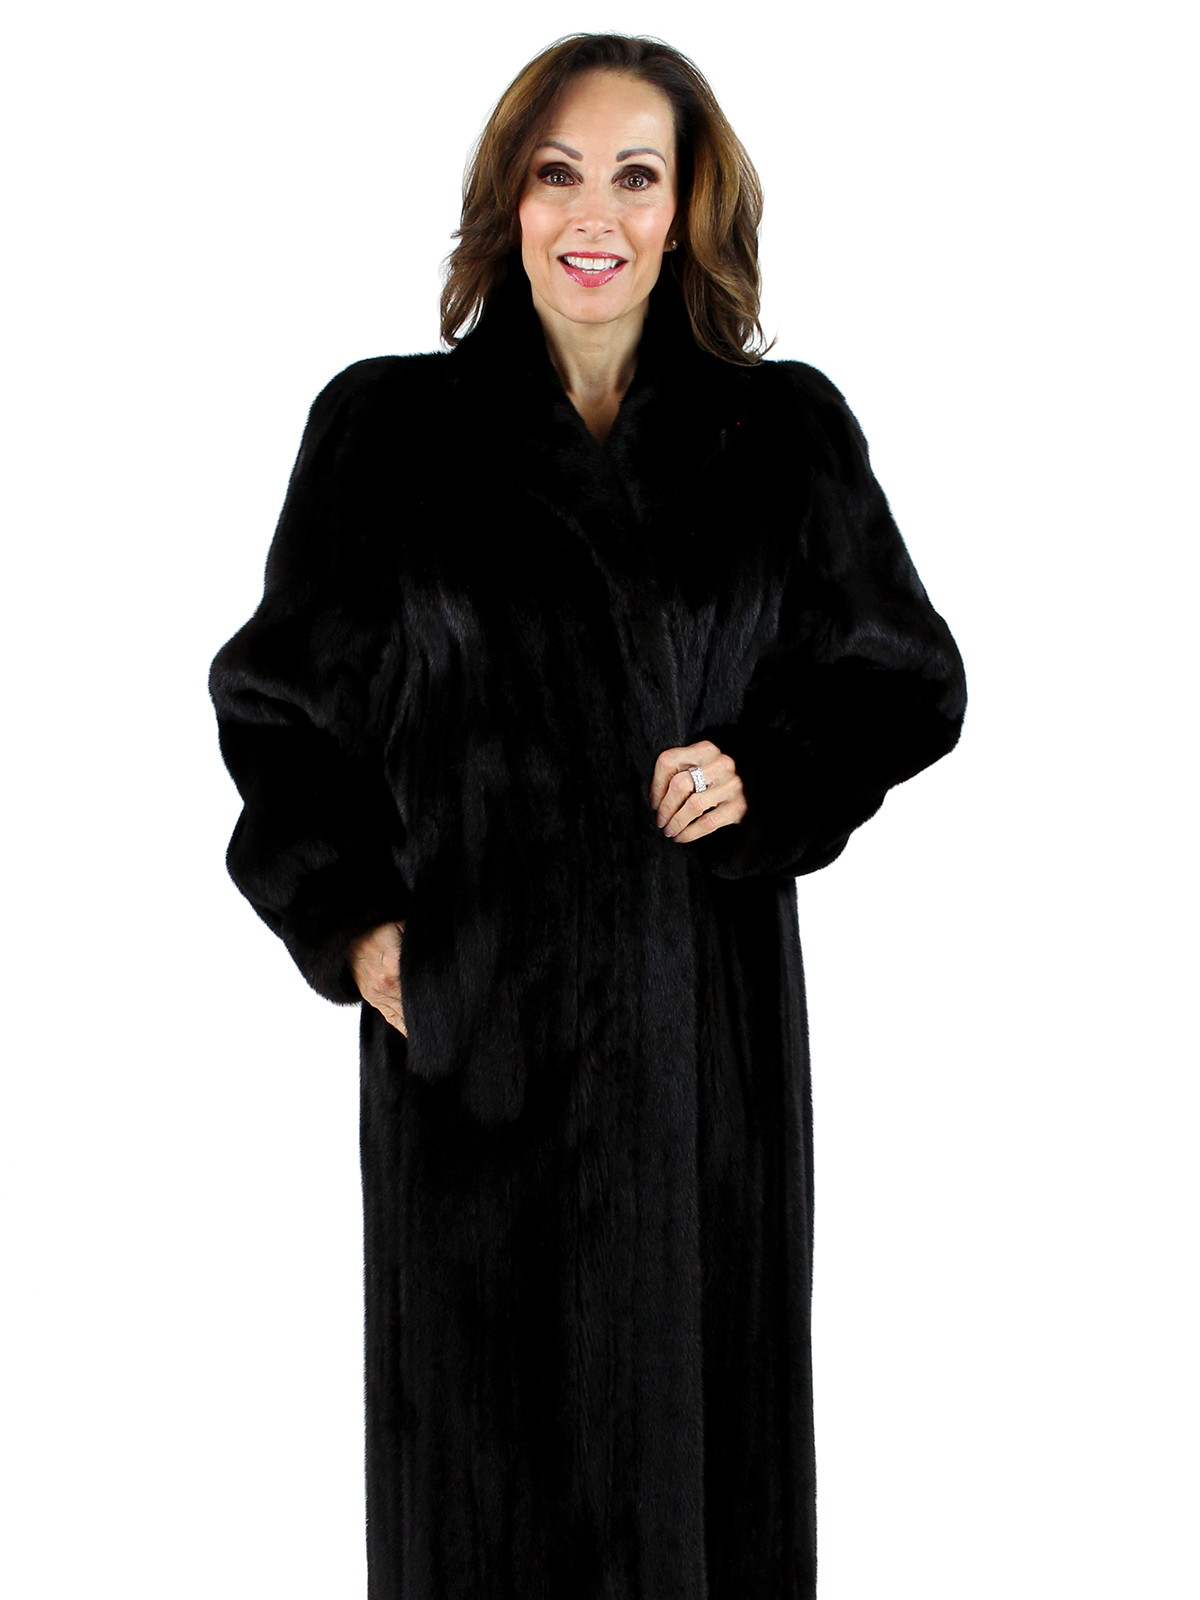 Woman's Ranch Female Mink Fur Coat with Matching Braided Headband